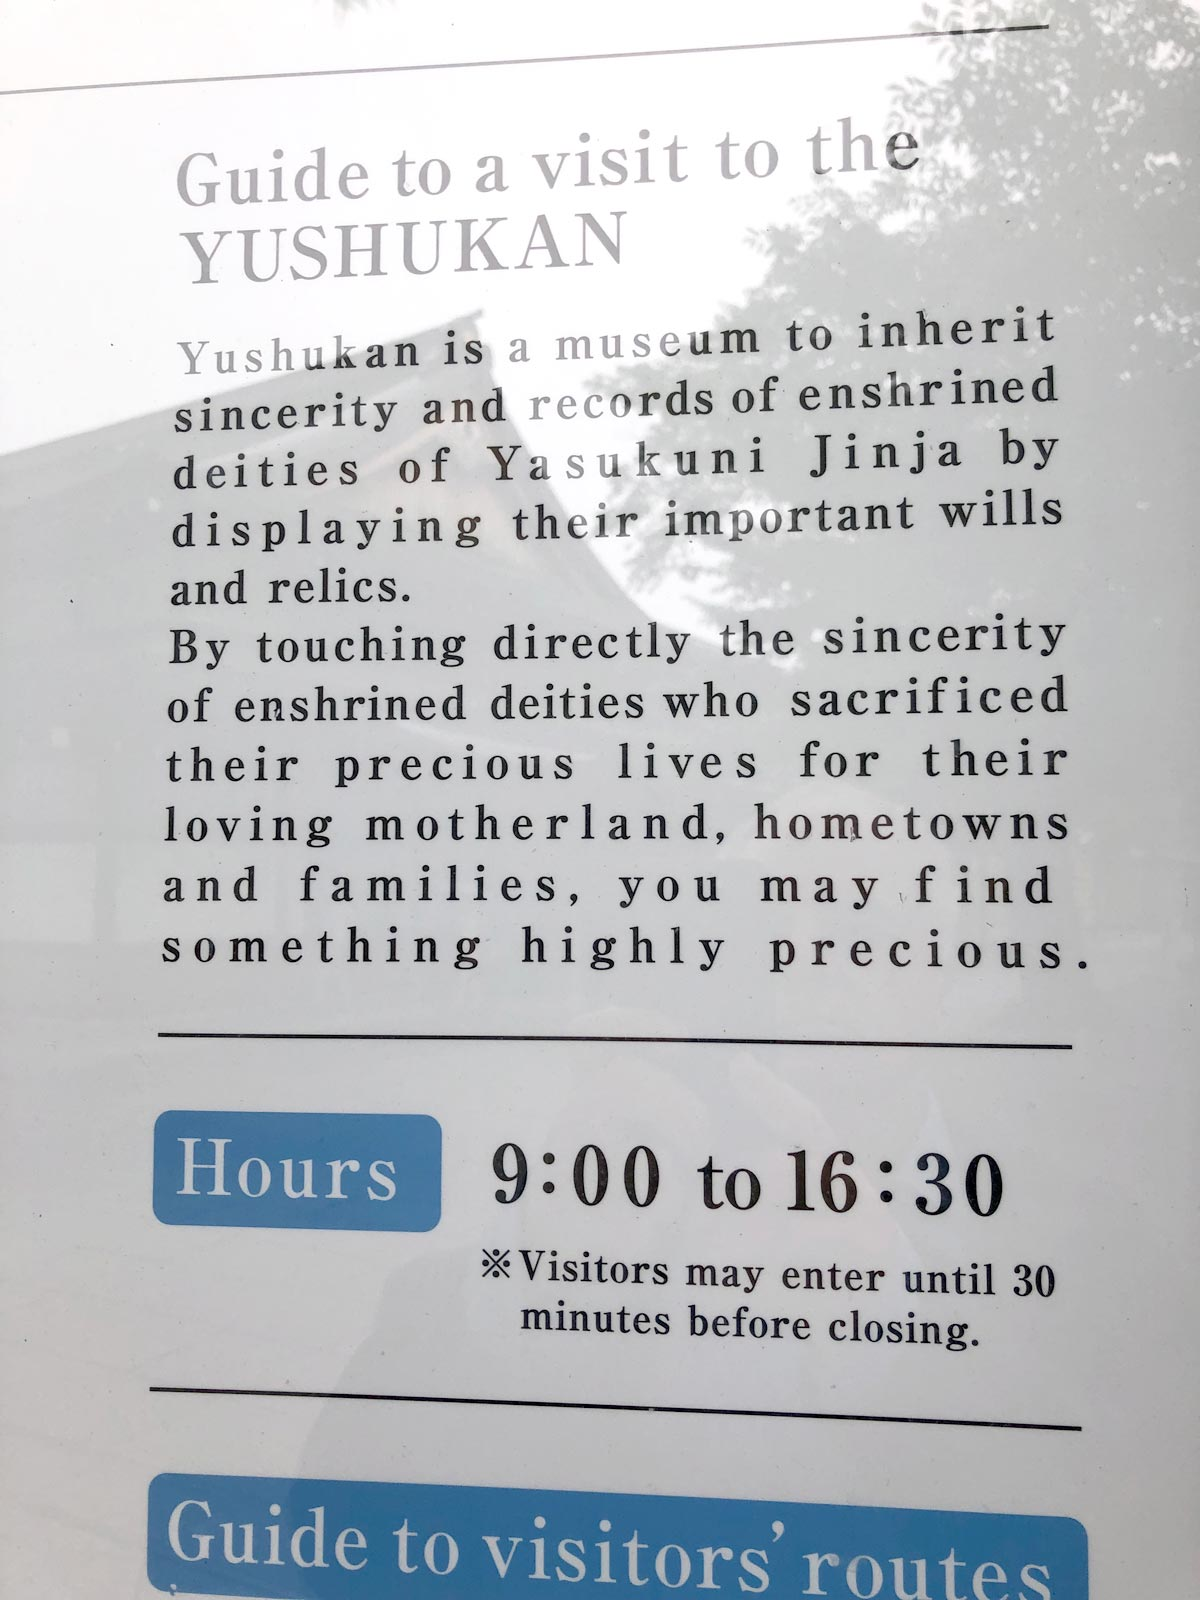 Explanatory sign inside the Yasukuni Museum in Japan